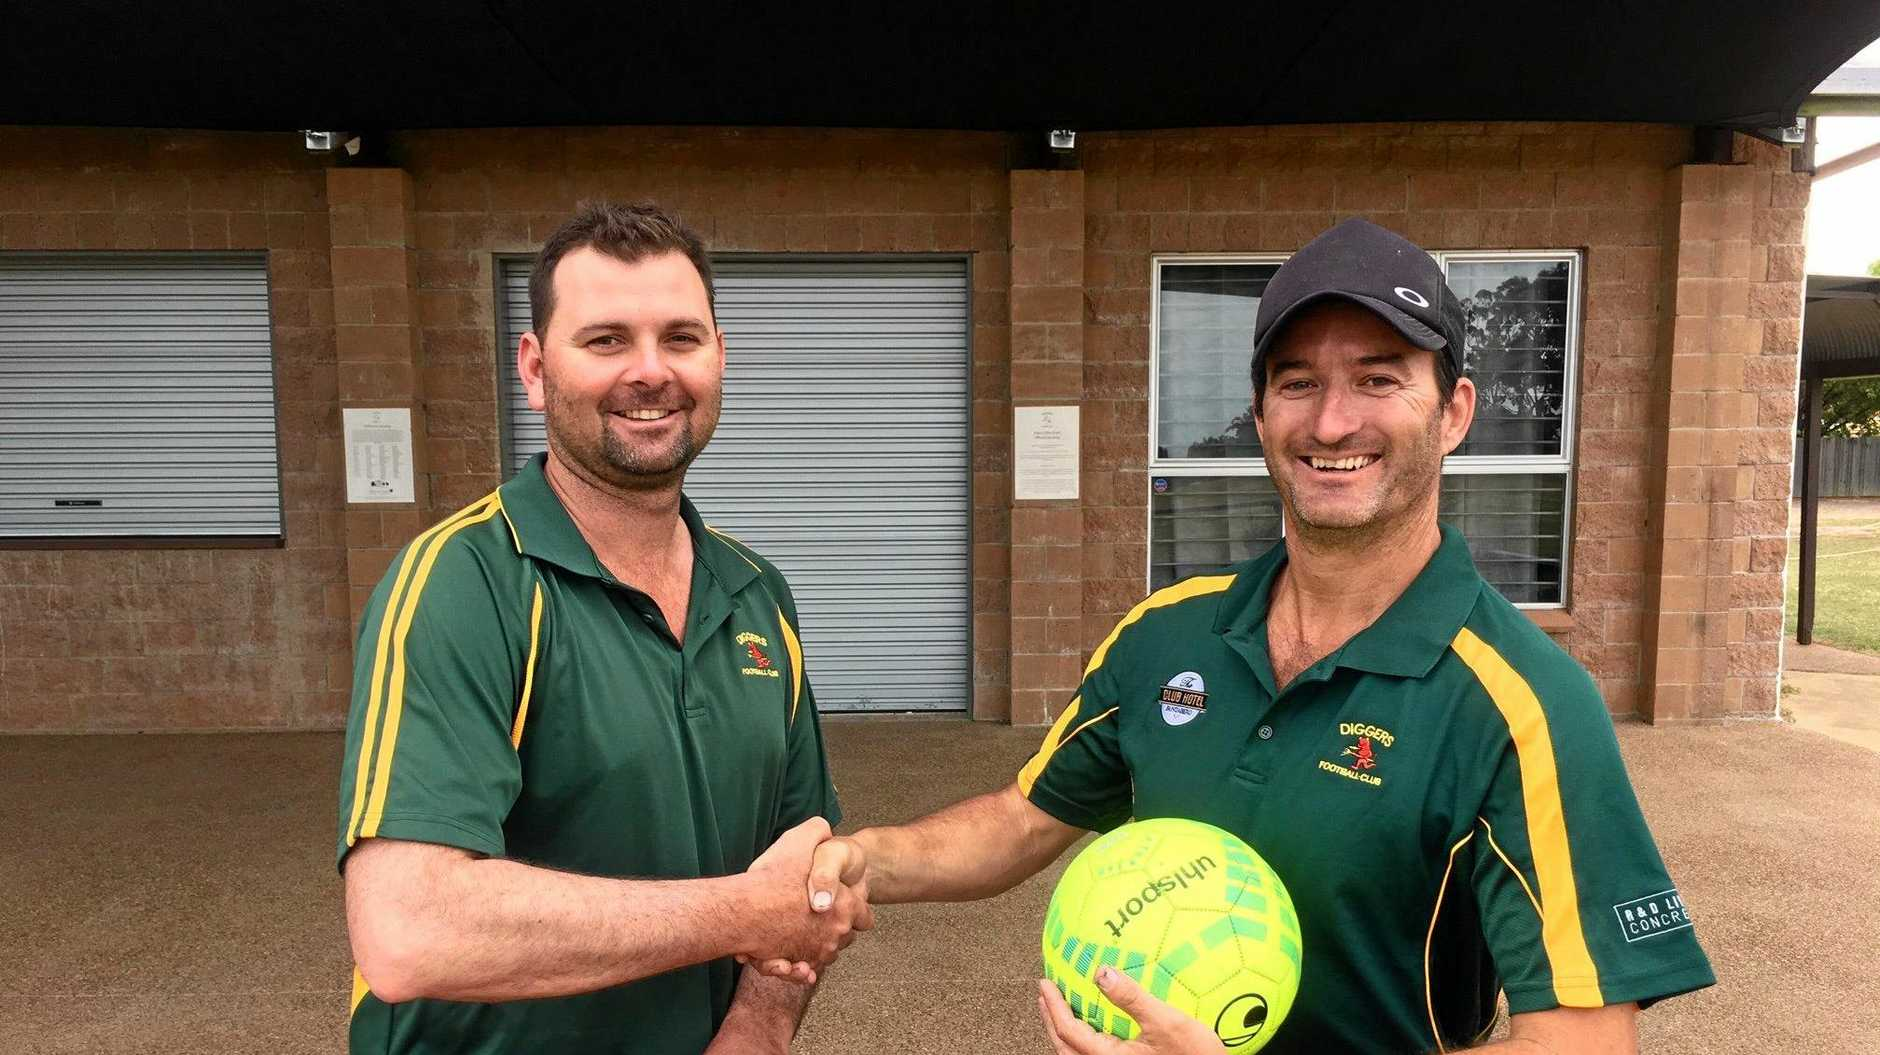 COMIN BACK: Diggers president Andrew Halpin with Todd Bray who will become the Wide Bay League 2 coach as the club moves into the league next year.